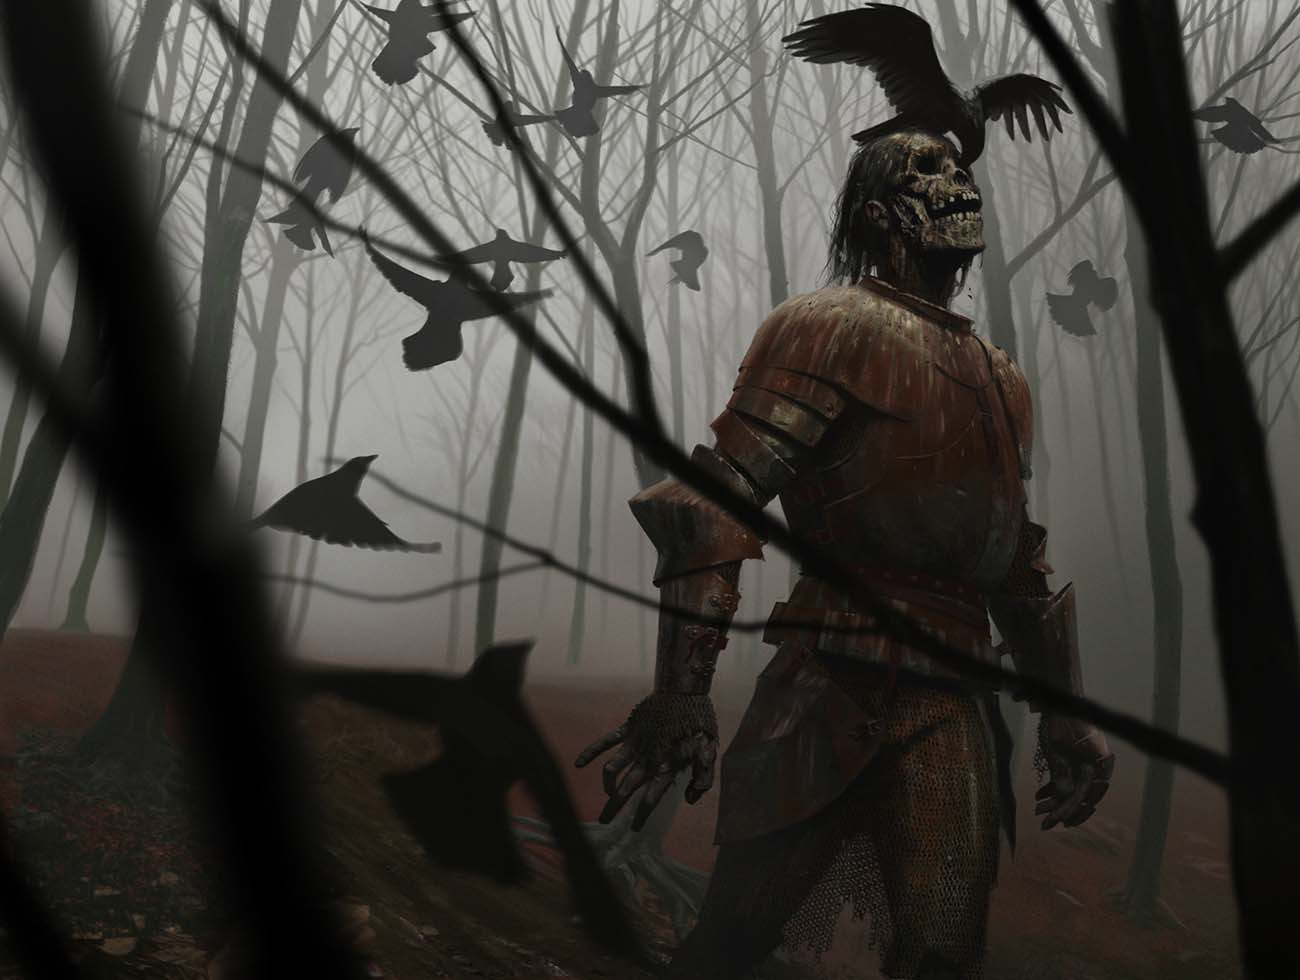 Joseph Meehan | Paintable.cc 25 Spooky Halloween Digital Paintings to Give You Nightmares! #digitalpainting #digitalart #halloween